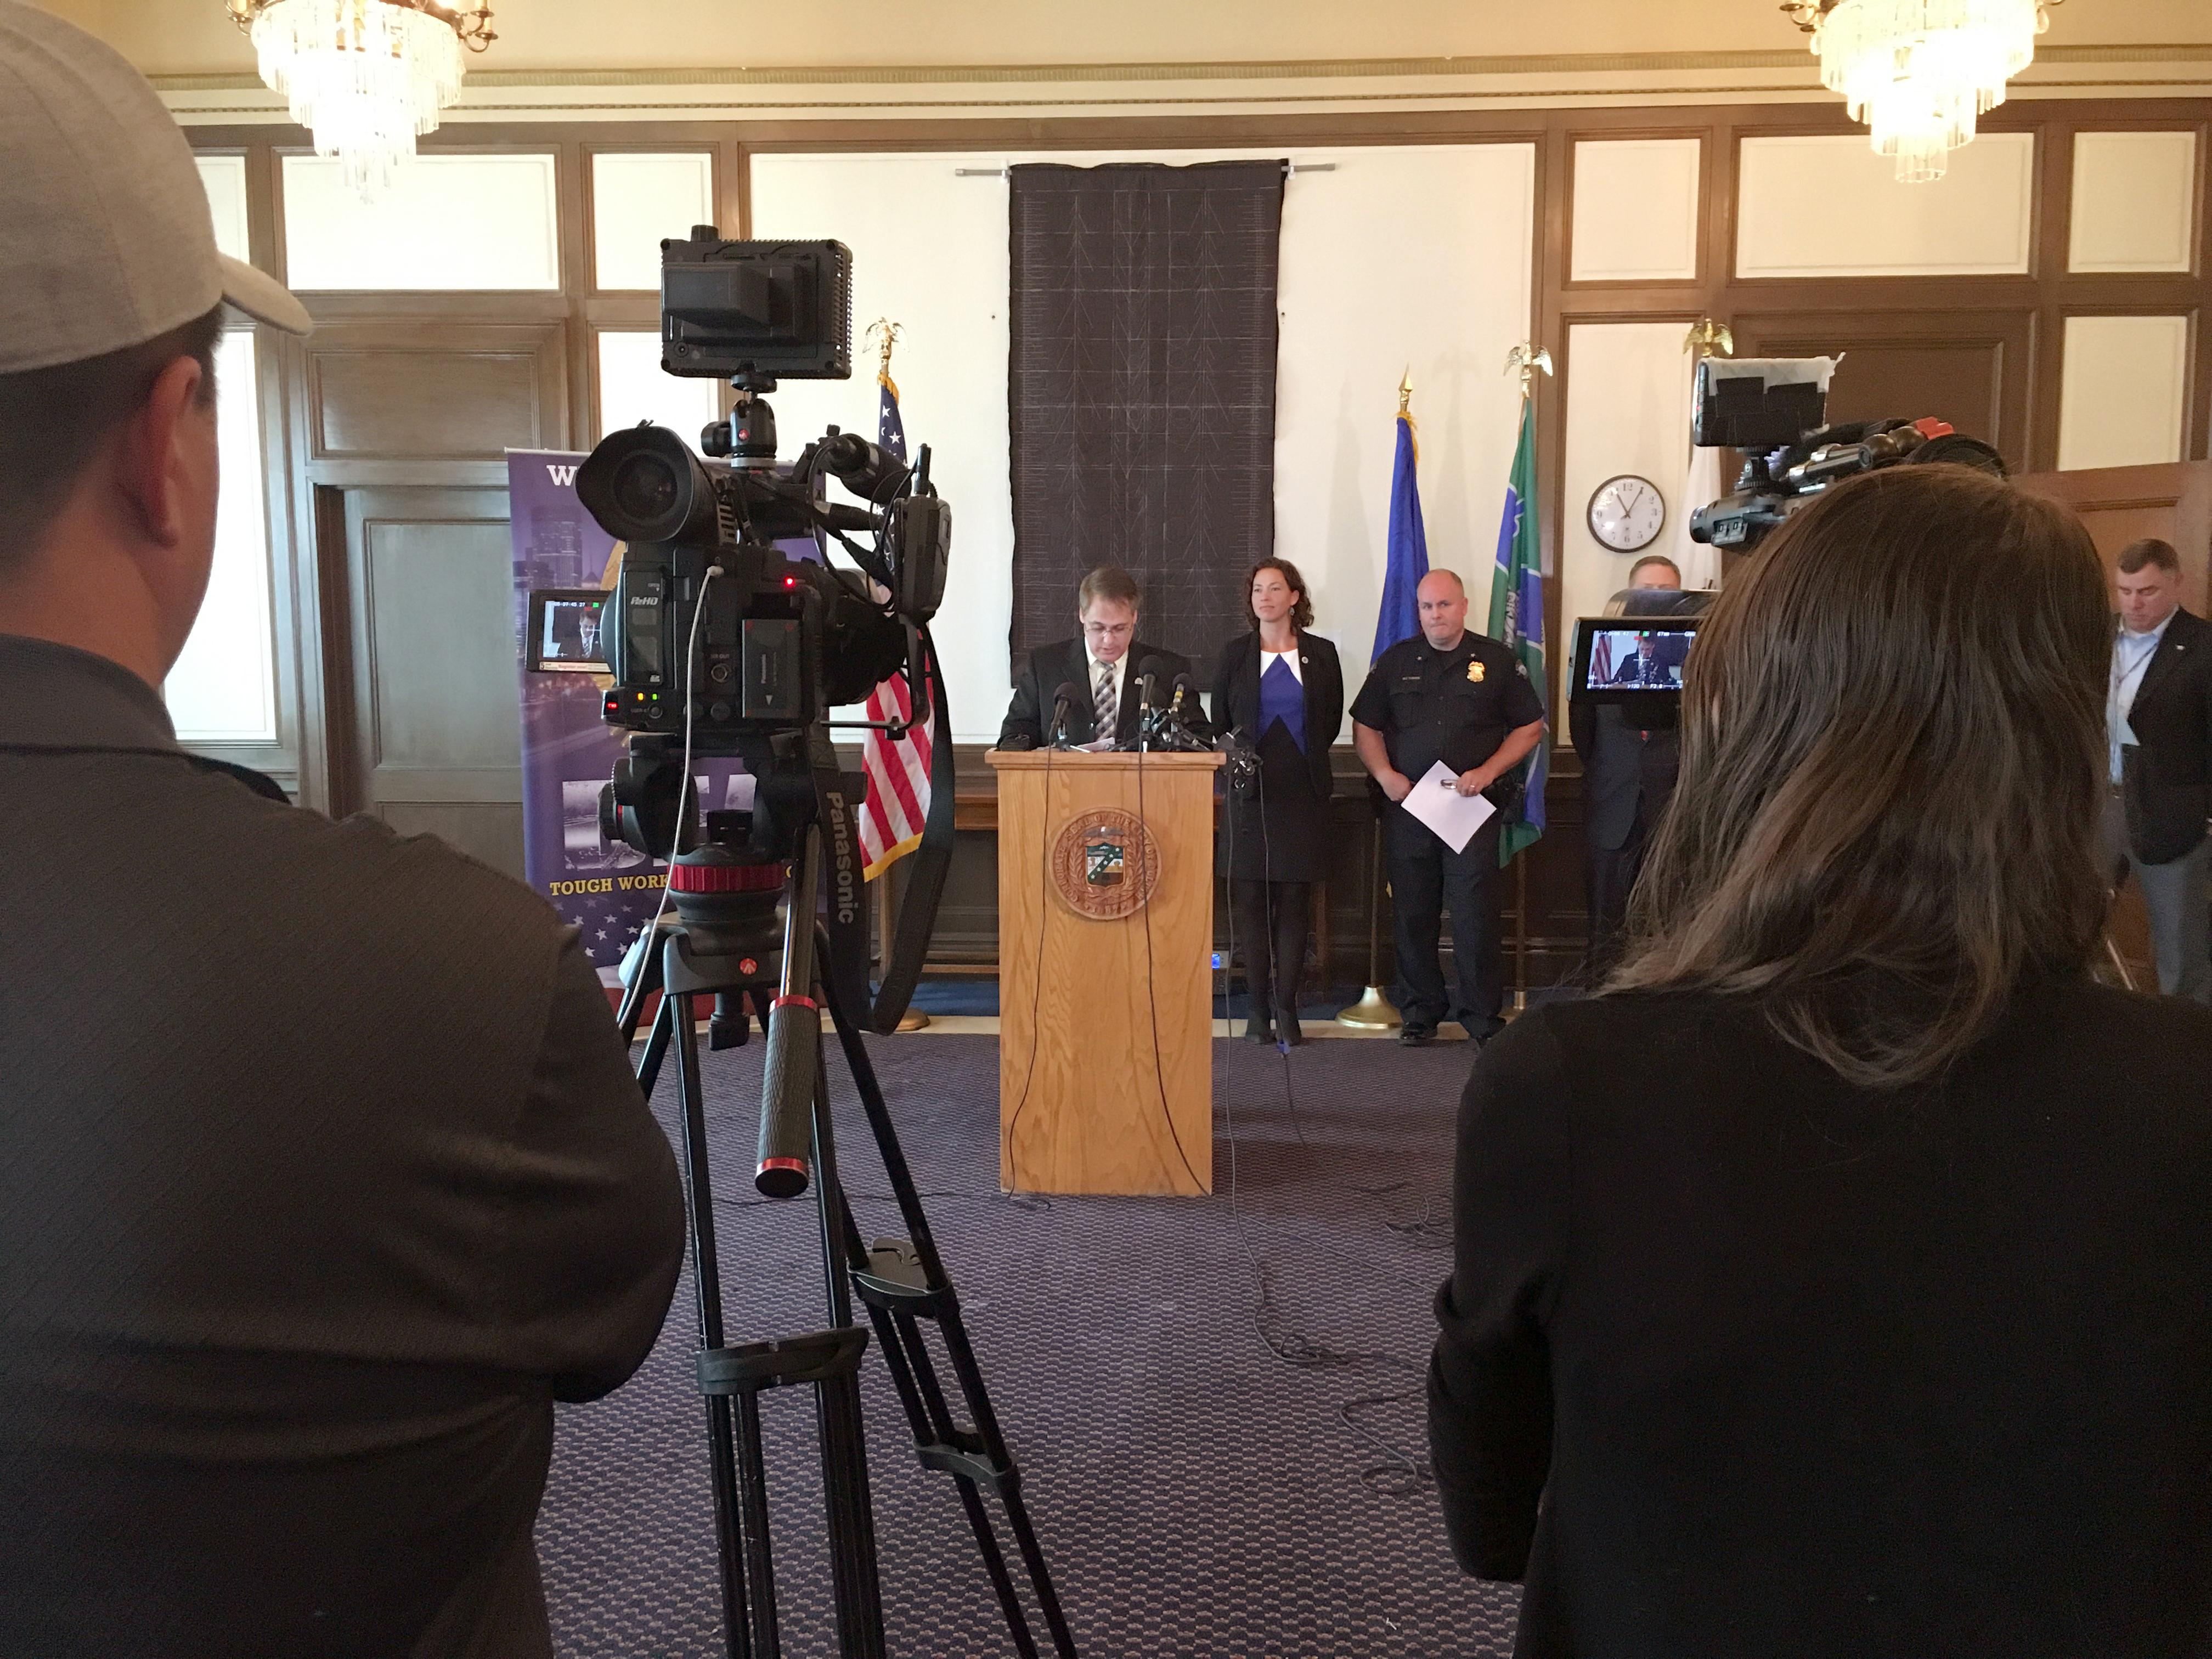 DEA Omaha Division announces new office and partnership in